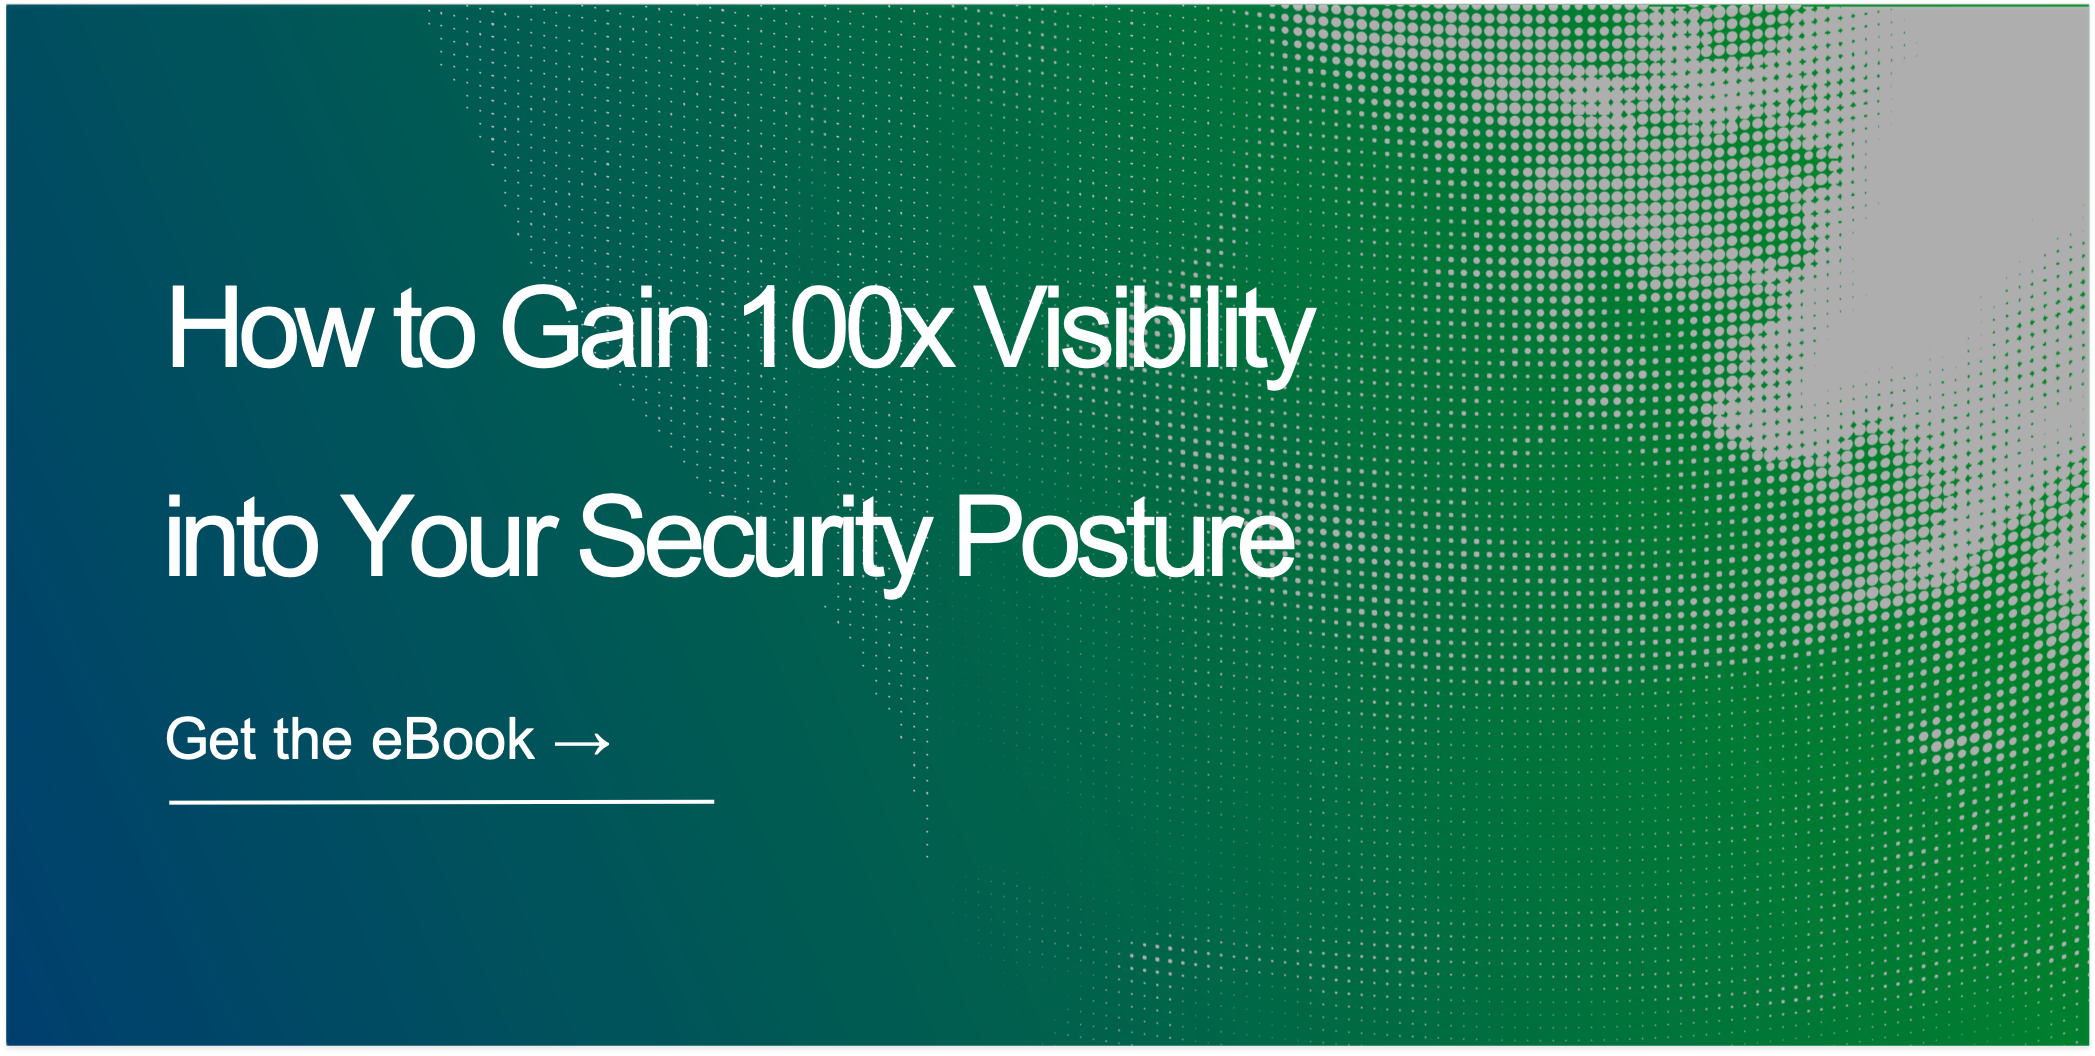 How to Gain 100x Visibility into Your Cybersecurity Posture